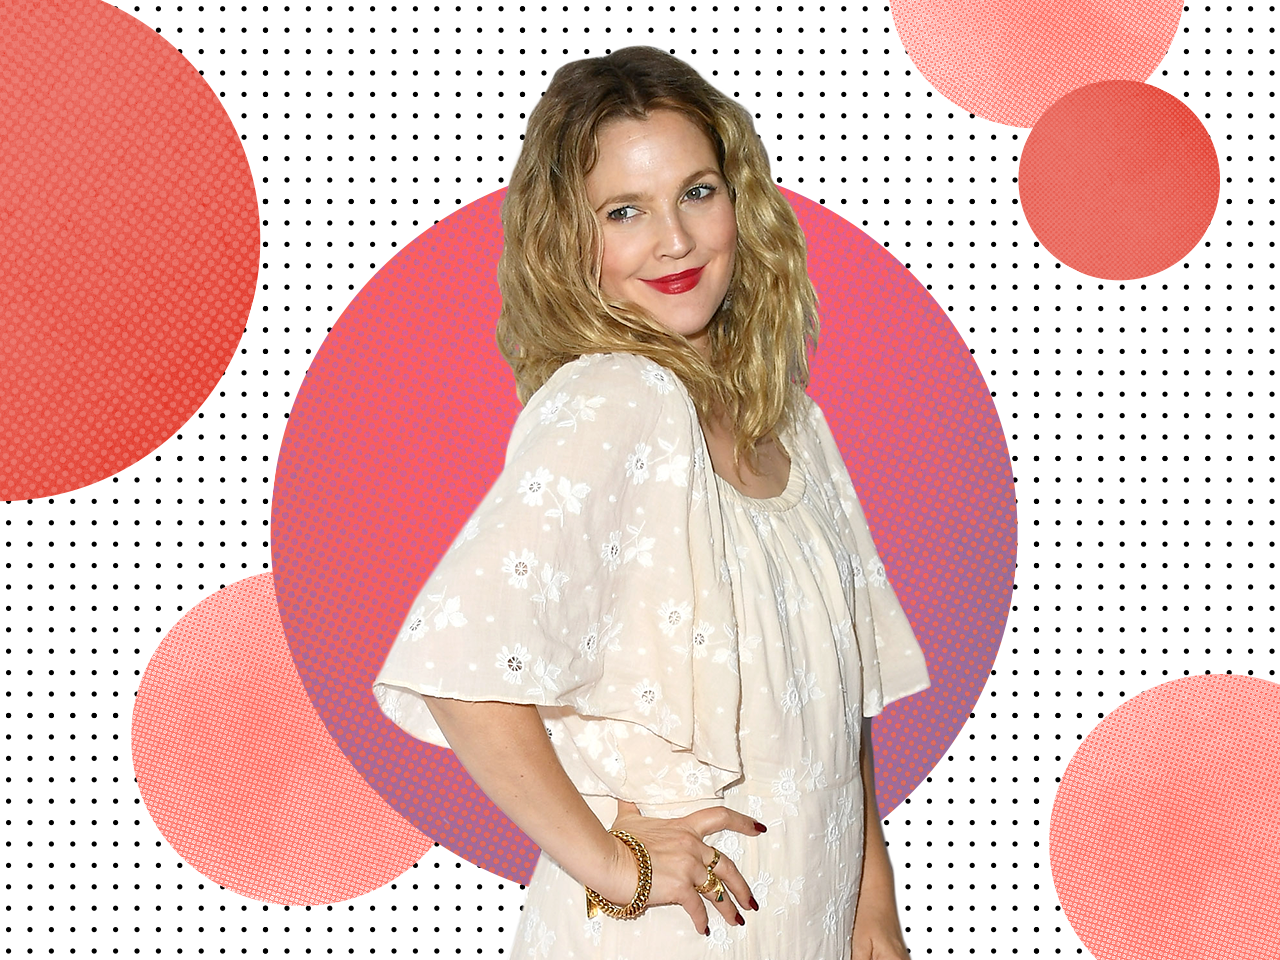 Drew Barrymore Shares the Nerdiest Thing She Does in Bed